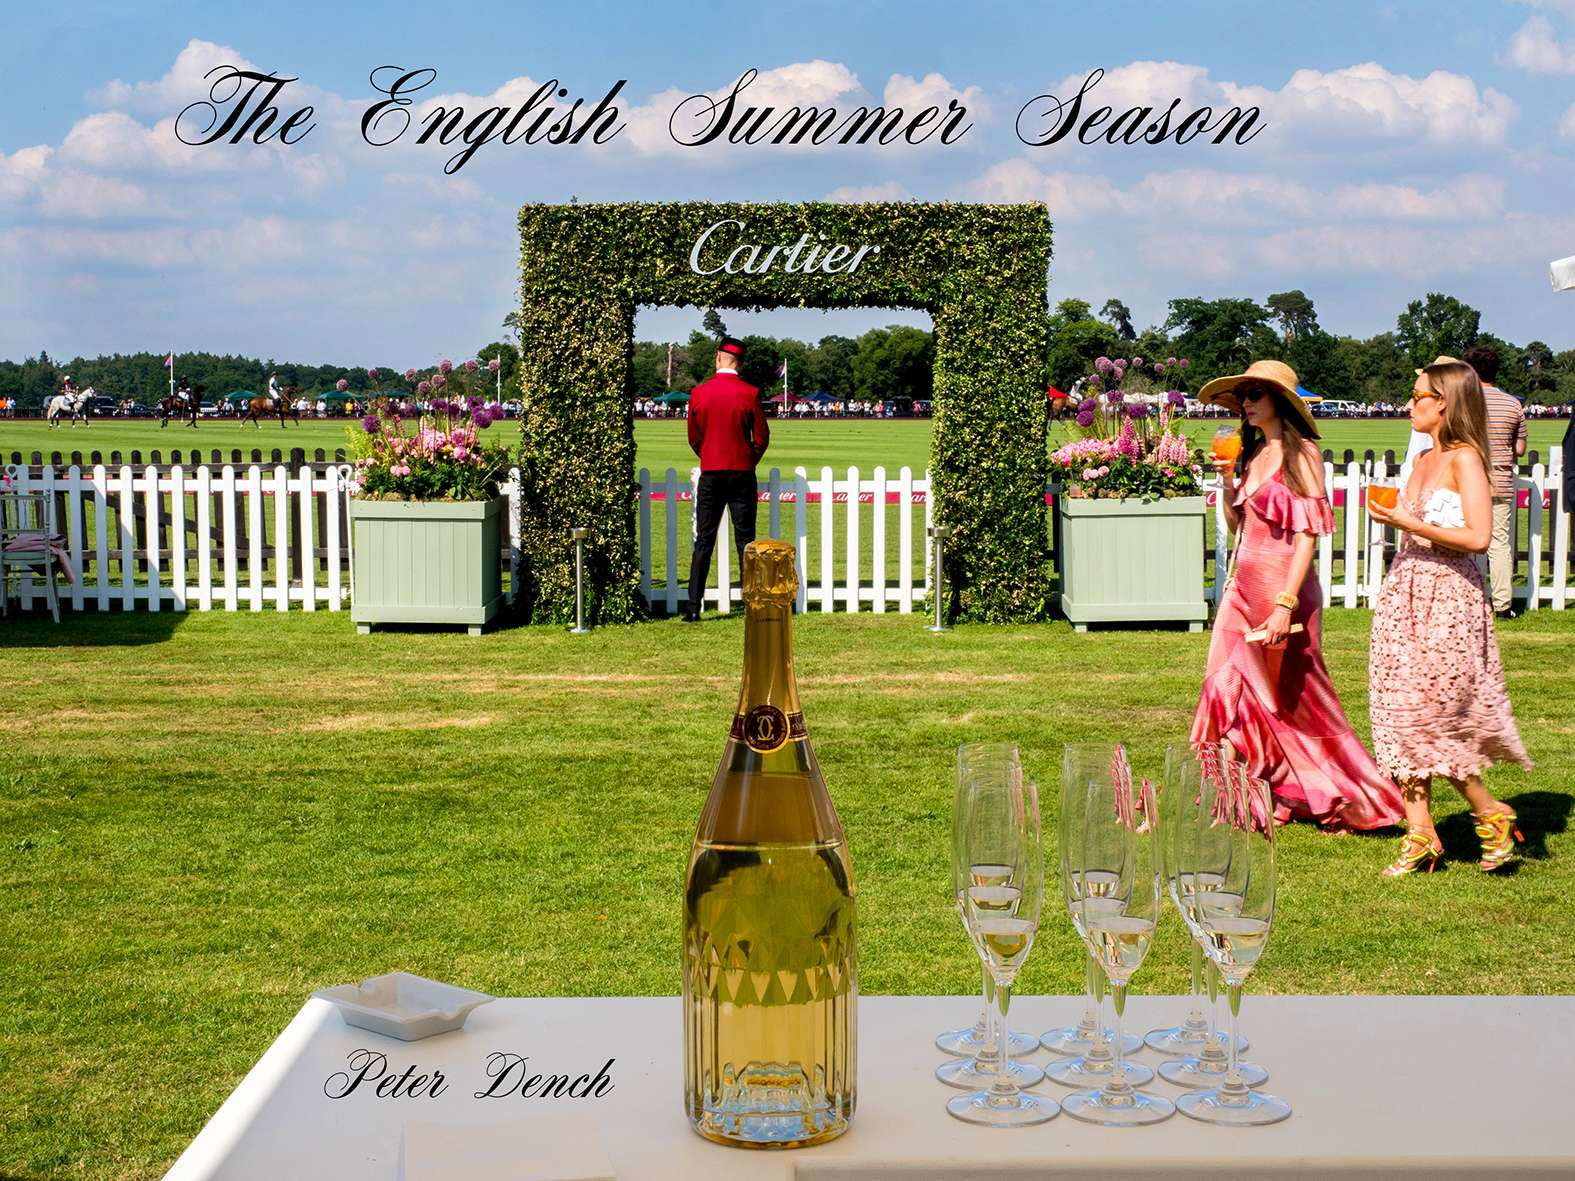 VIP guests socialise in the Cartier marquee.The 2017 Cartier Queen's Cup Final was played at the Guards Polo Club located in Windsor Great Park.